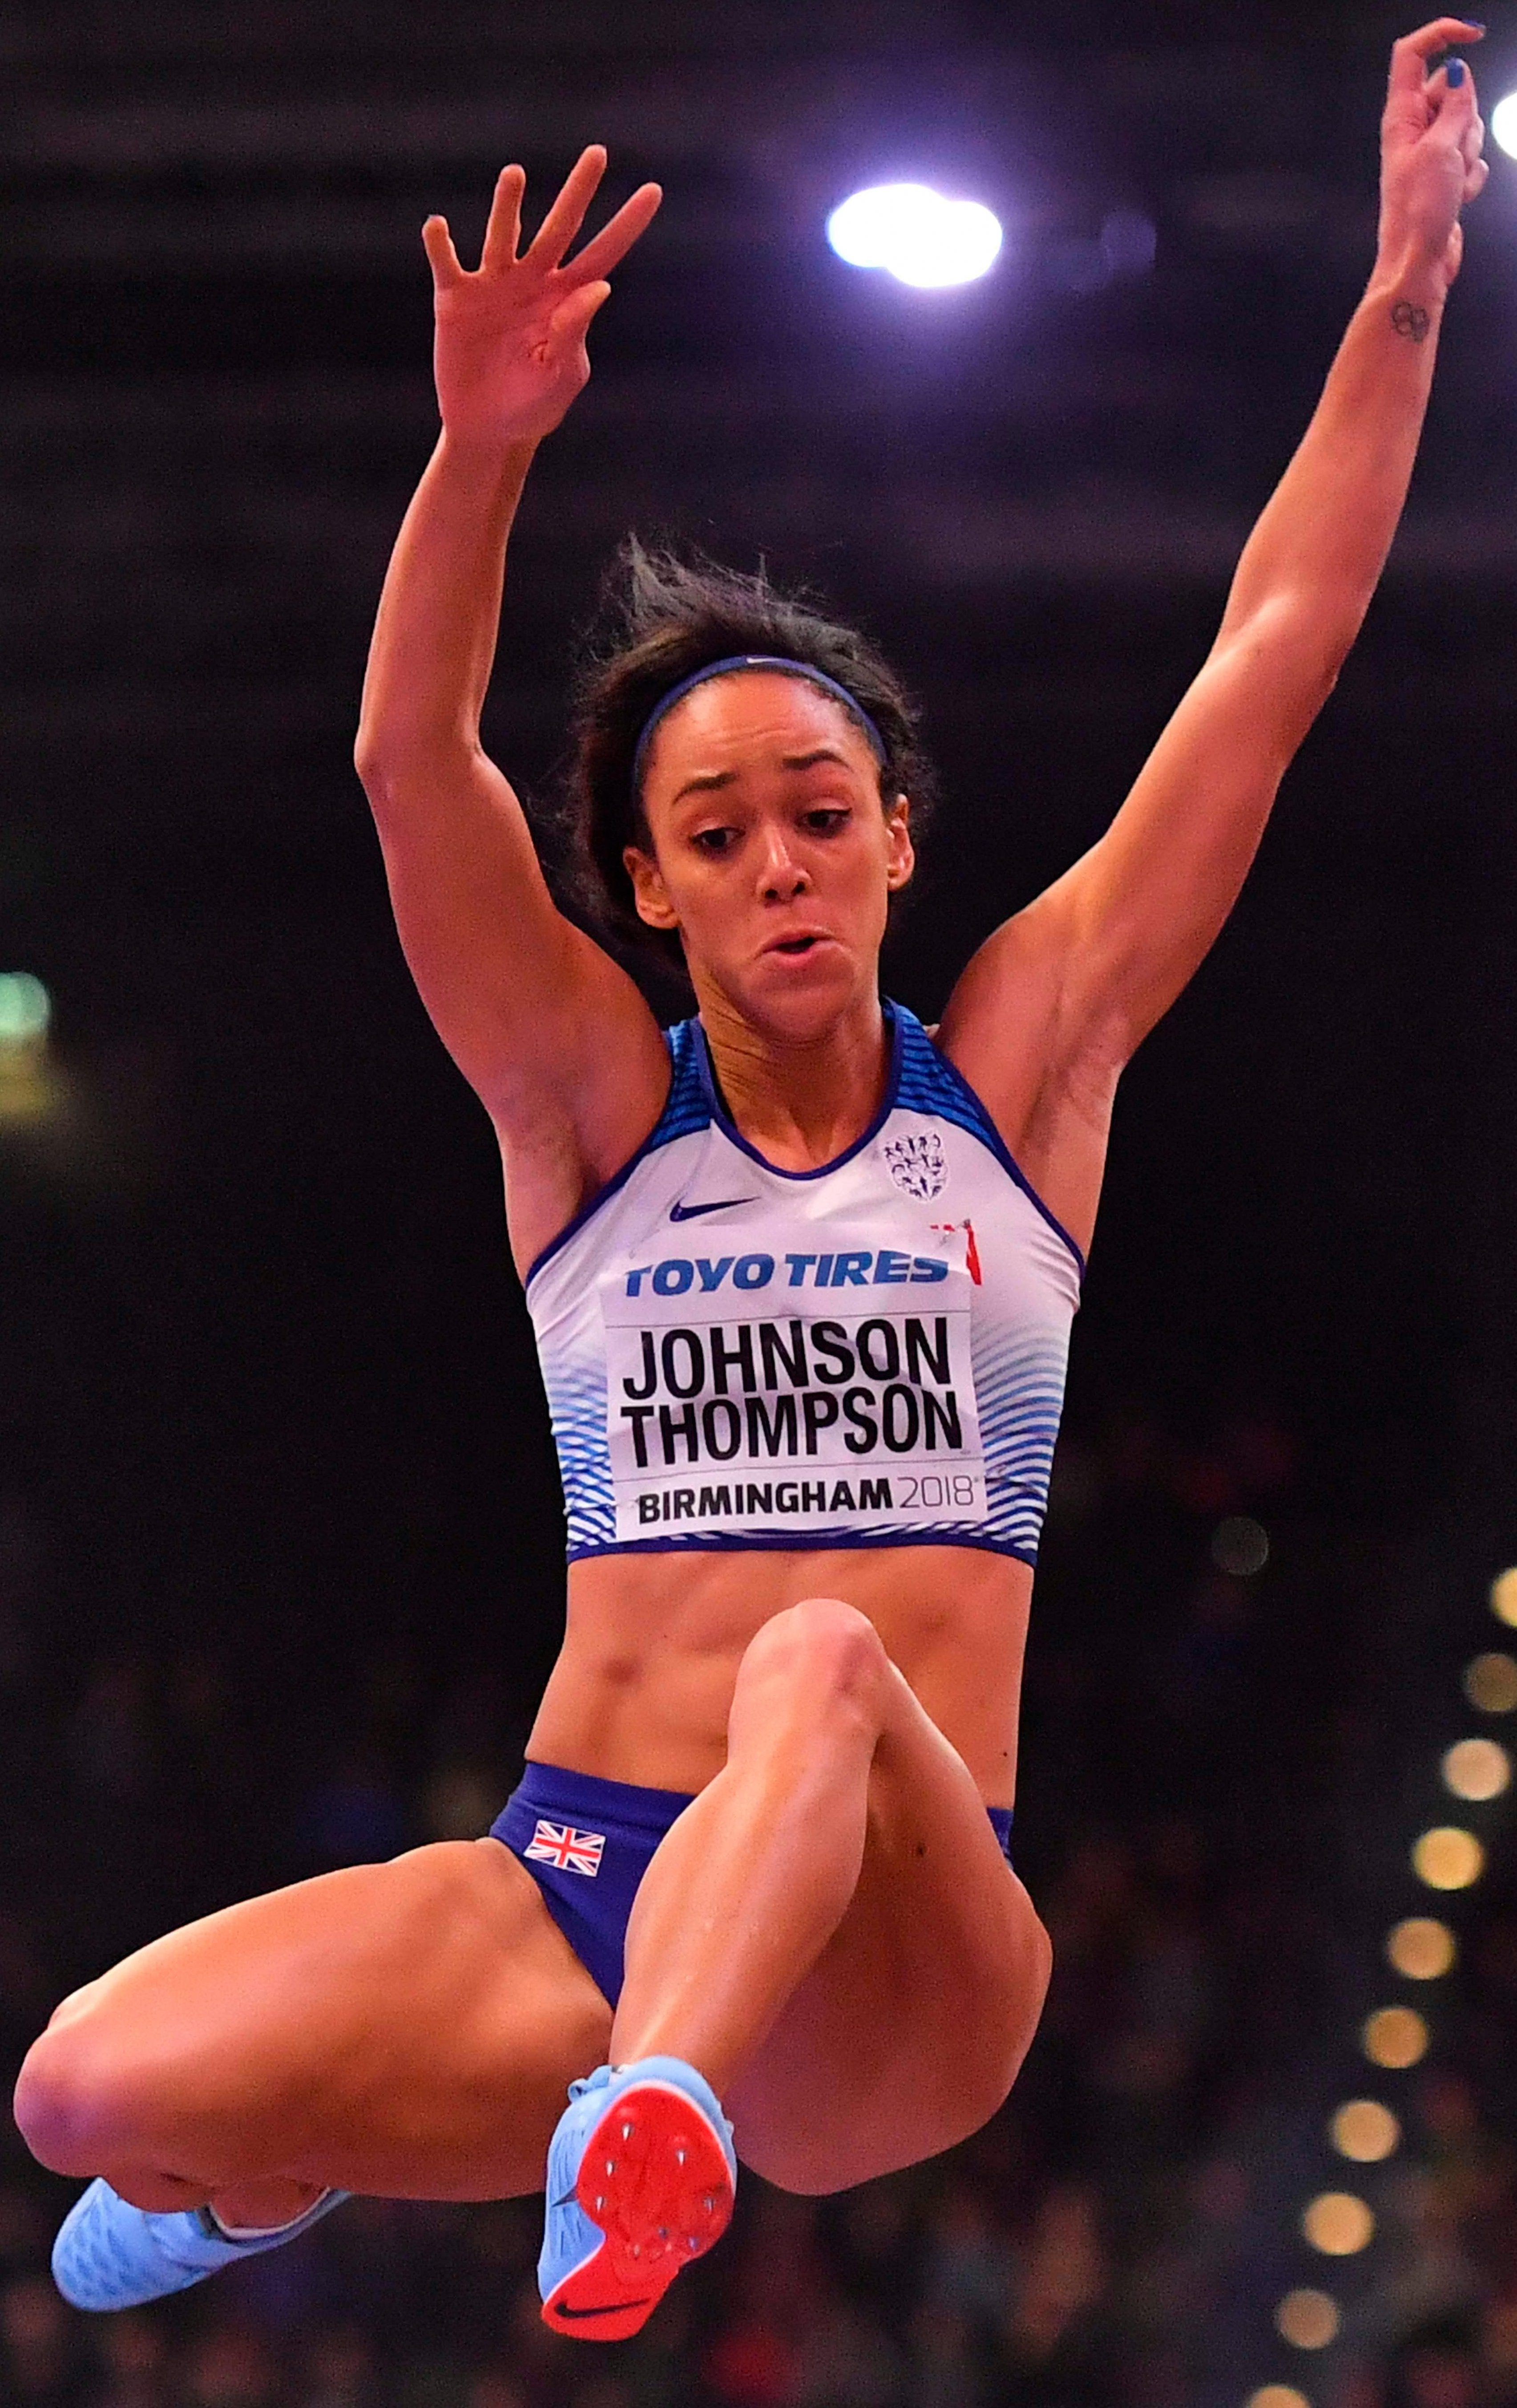 Katarina Johnson-Thompson won gold at the World Indoor Championships in Birmingham last year